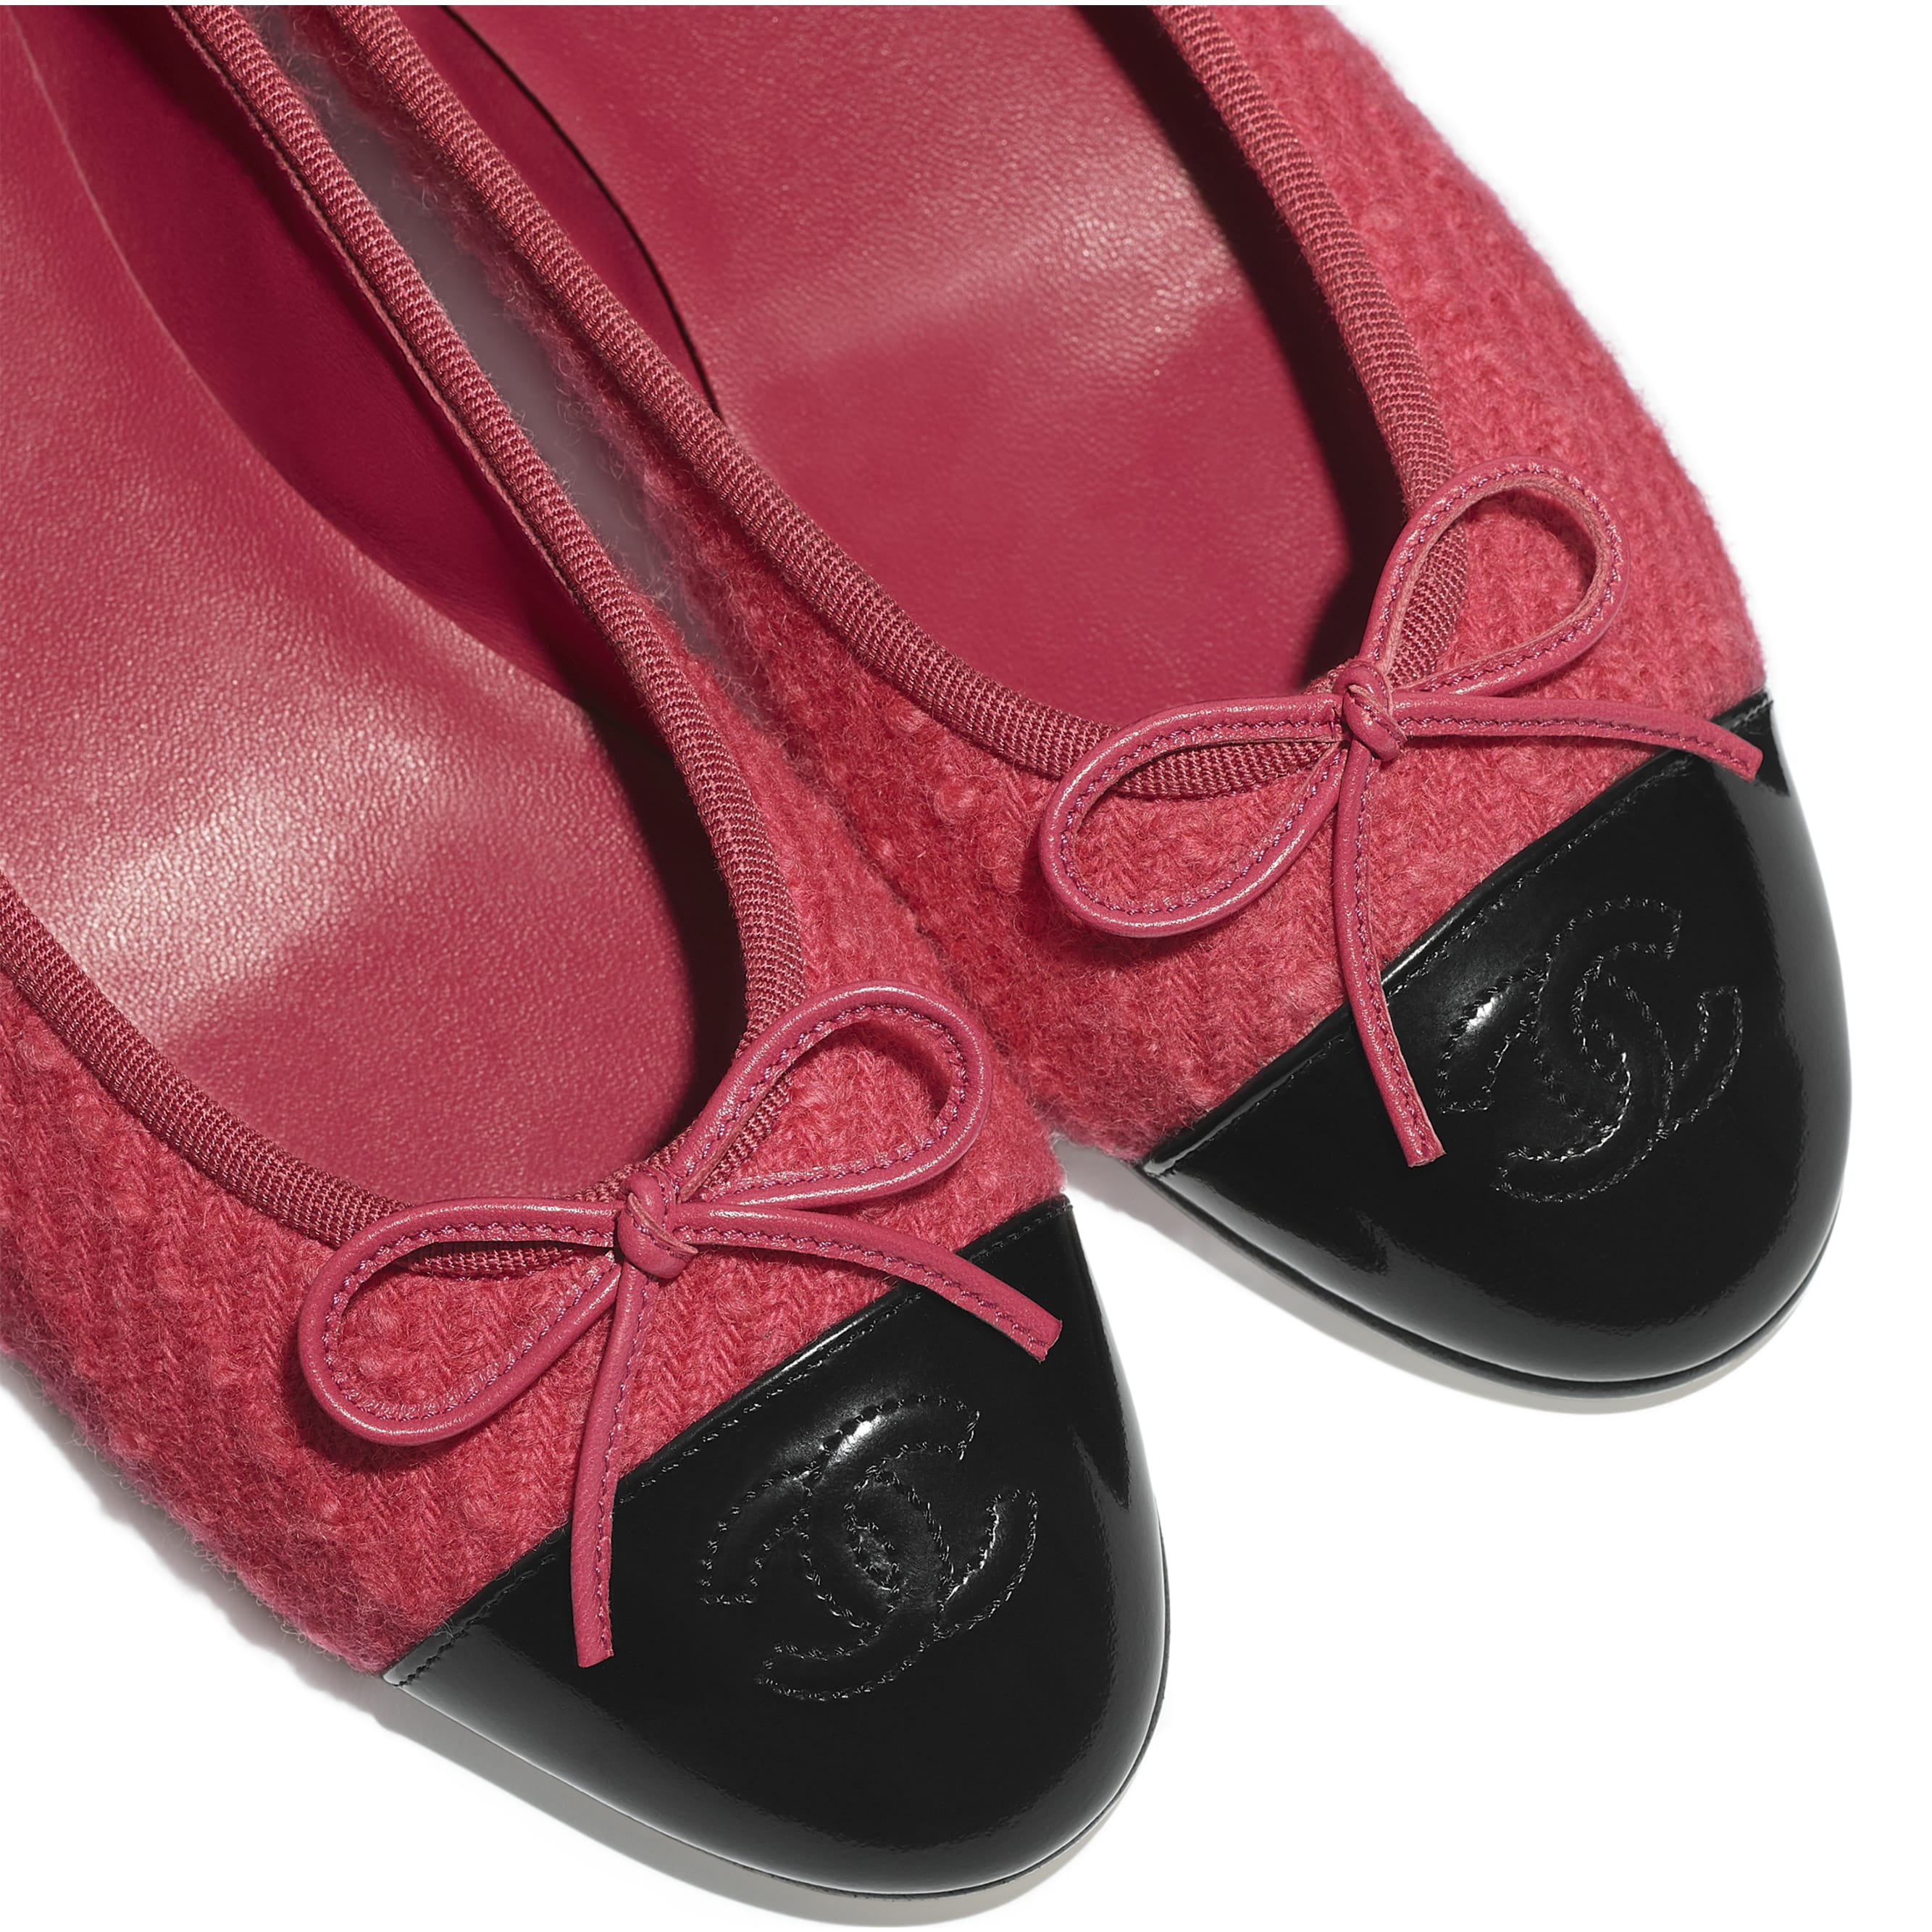 Flats - Pink & Black - Tweed & Calfskin - CHANEL - Extra view - see standard sized version